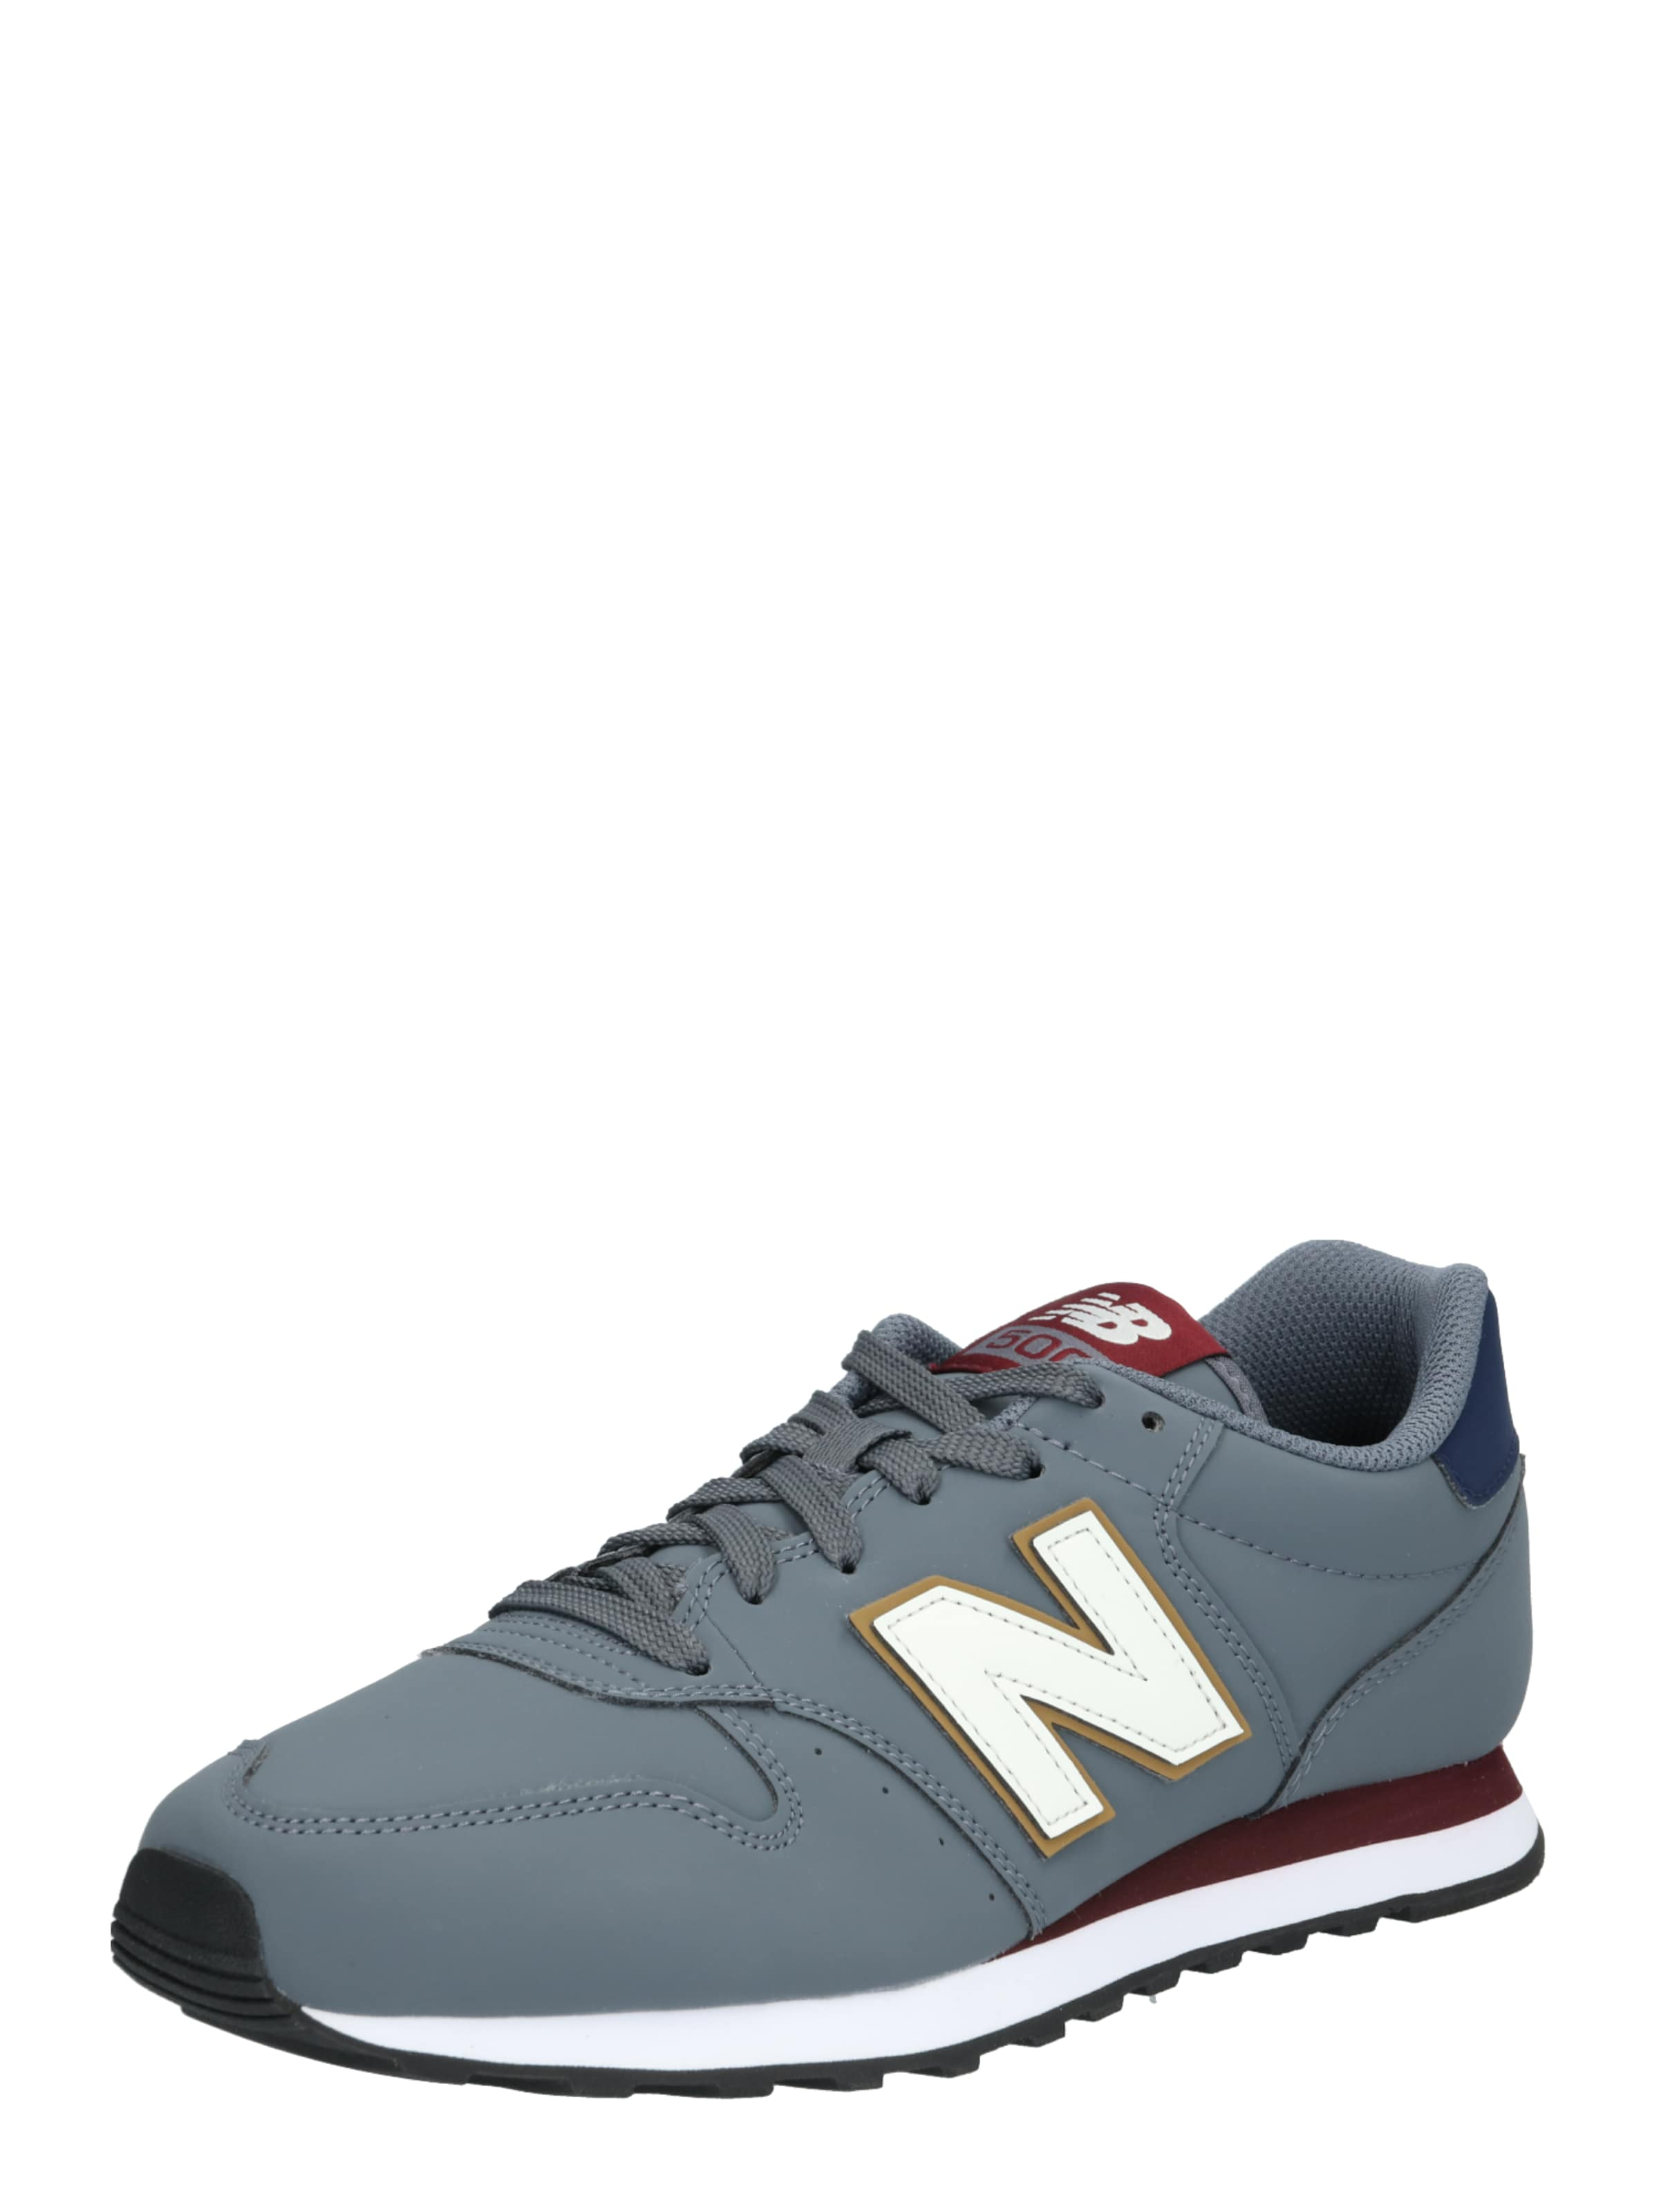 'gm500wb' New Balance In Sneaker DunkelgrauRot m8vwn0ON